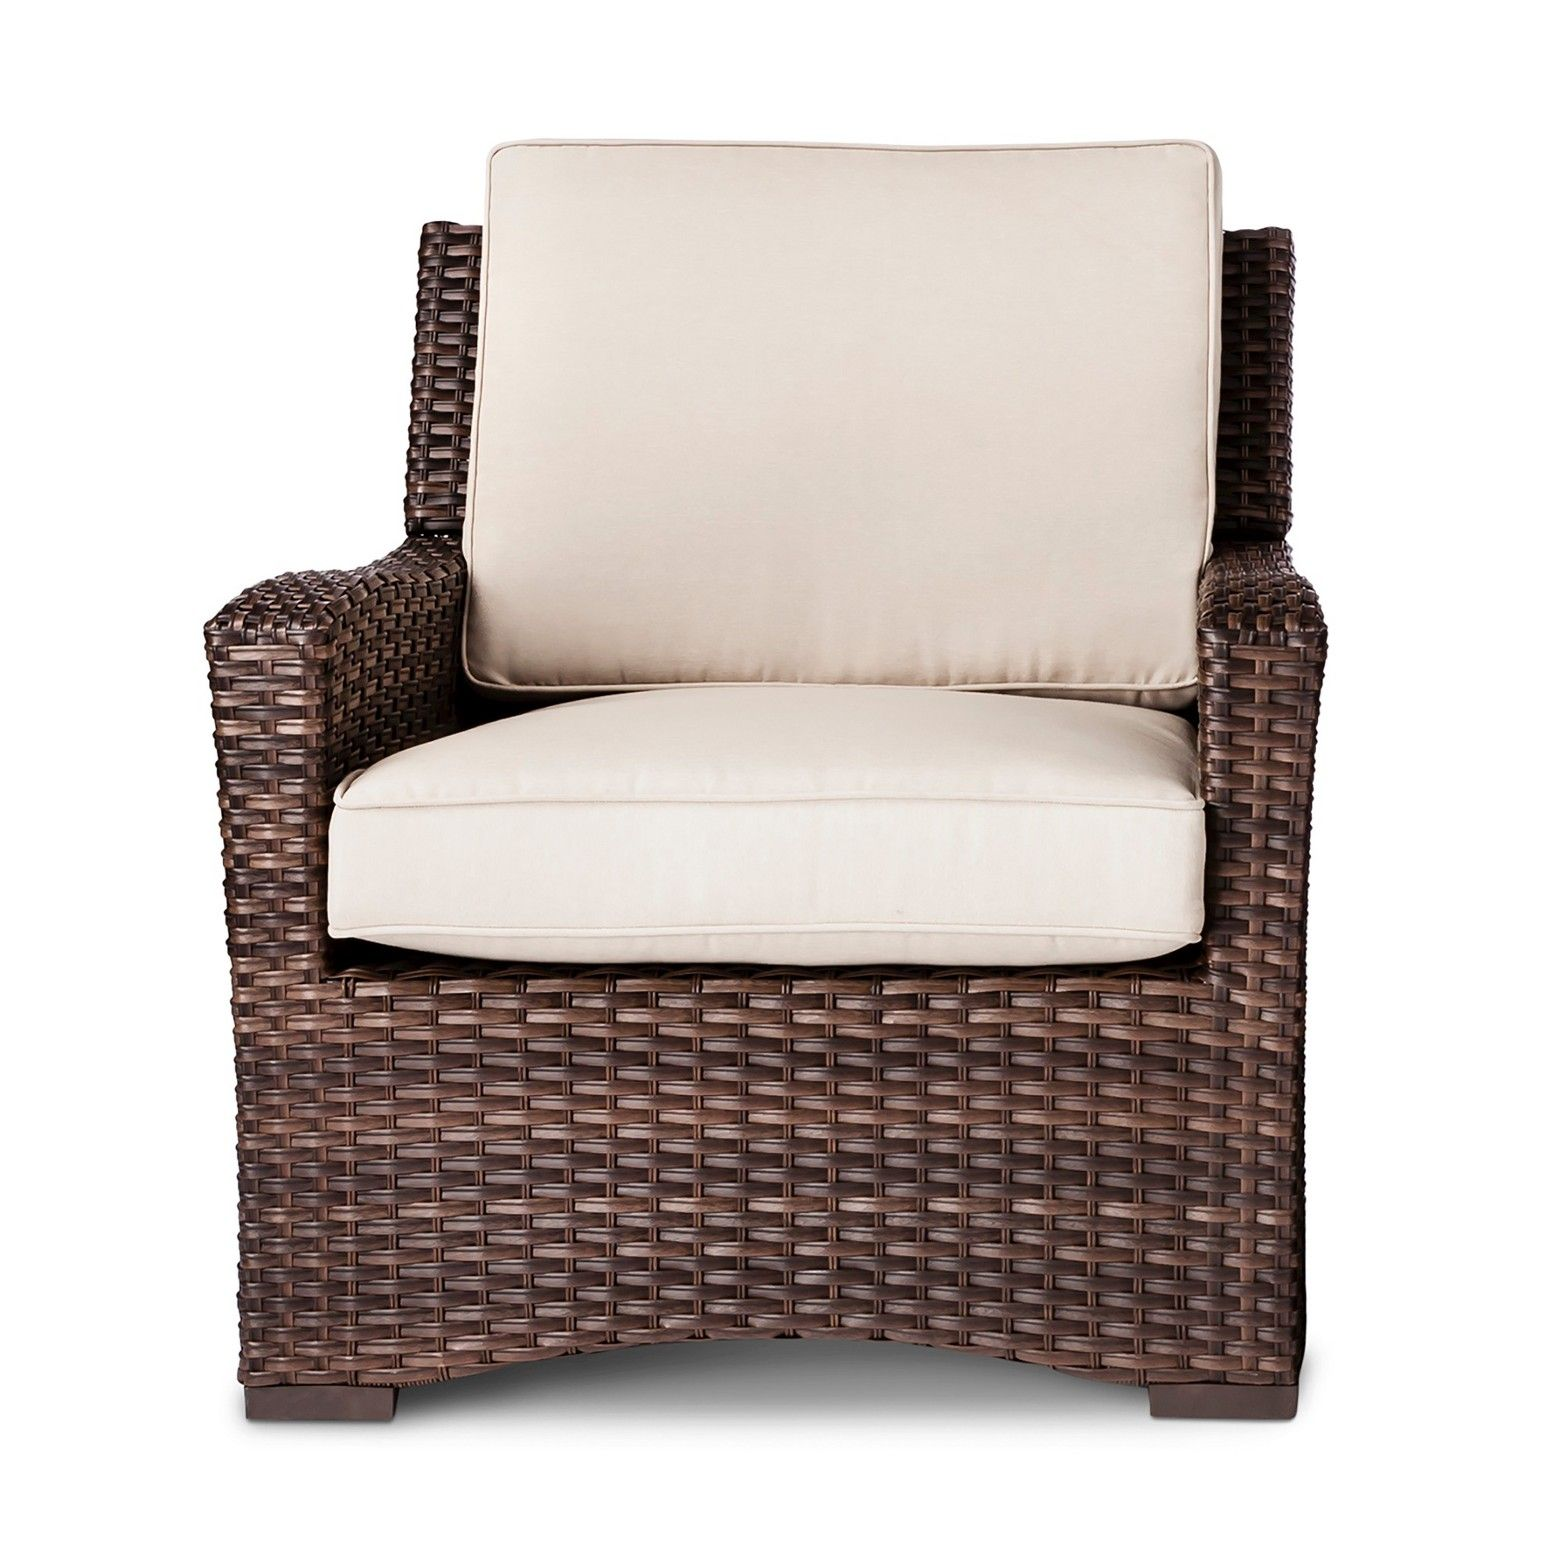 Compatible with the threshold club patio chair cover refresh your backyard with the halsted wicker patio club chair from threshold